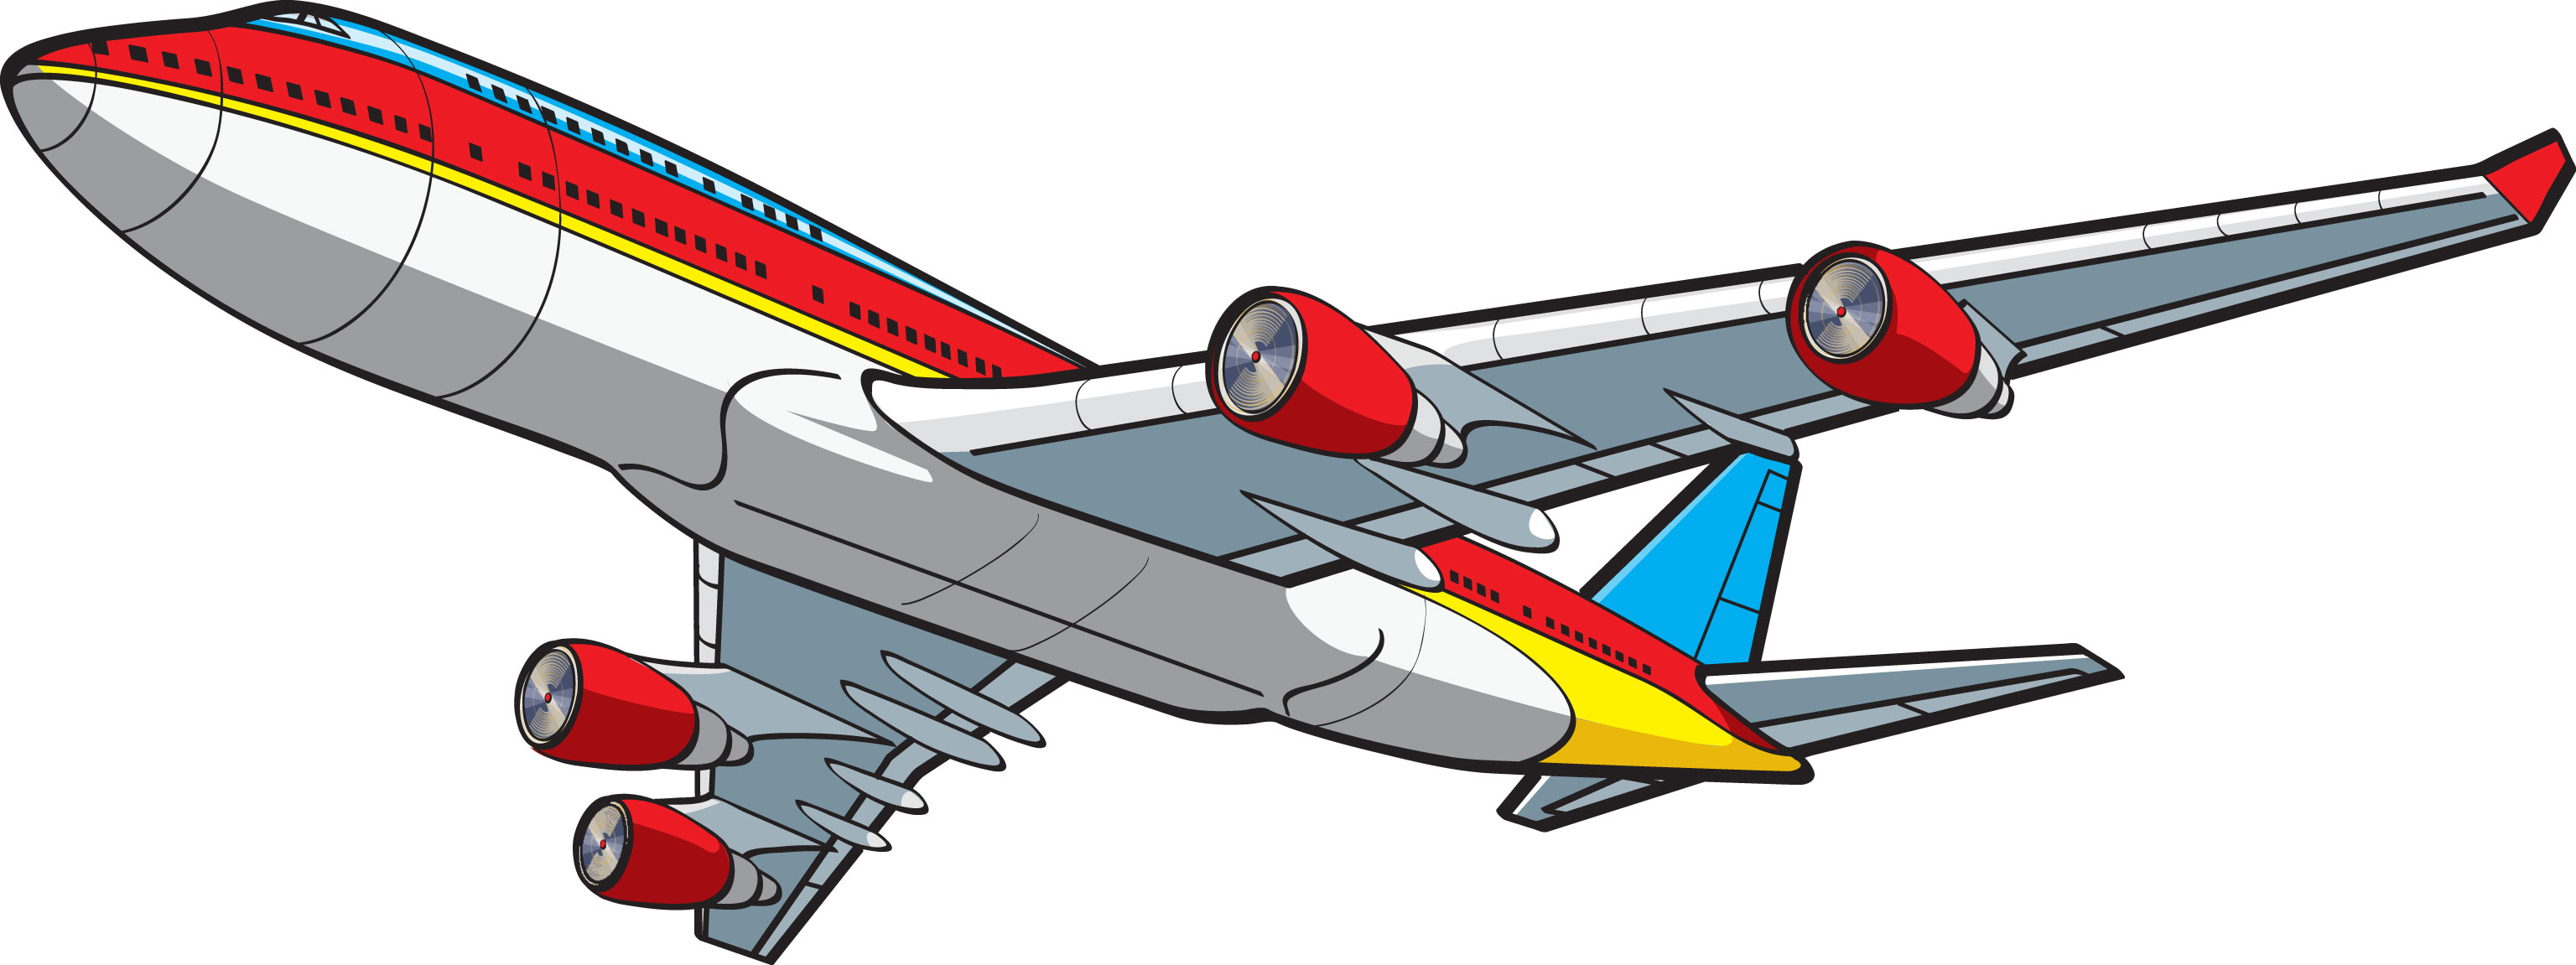 3072x1151 Aircraft Clipart Animated